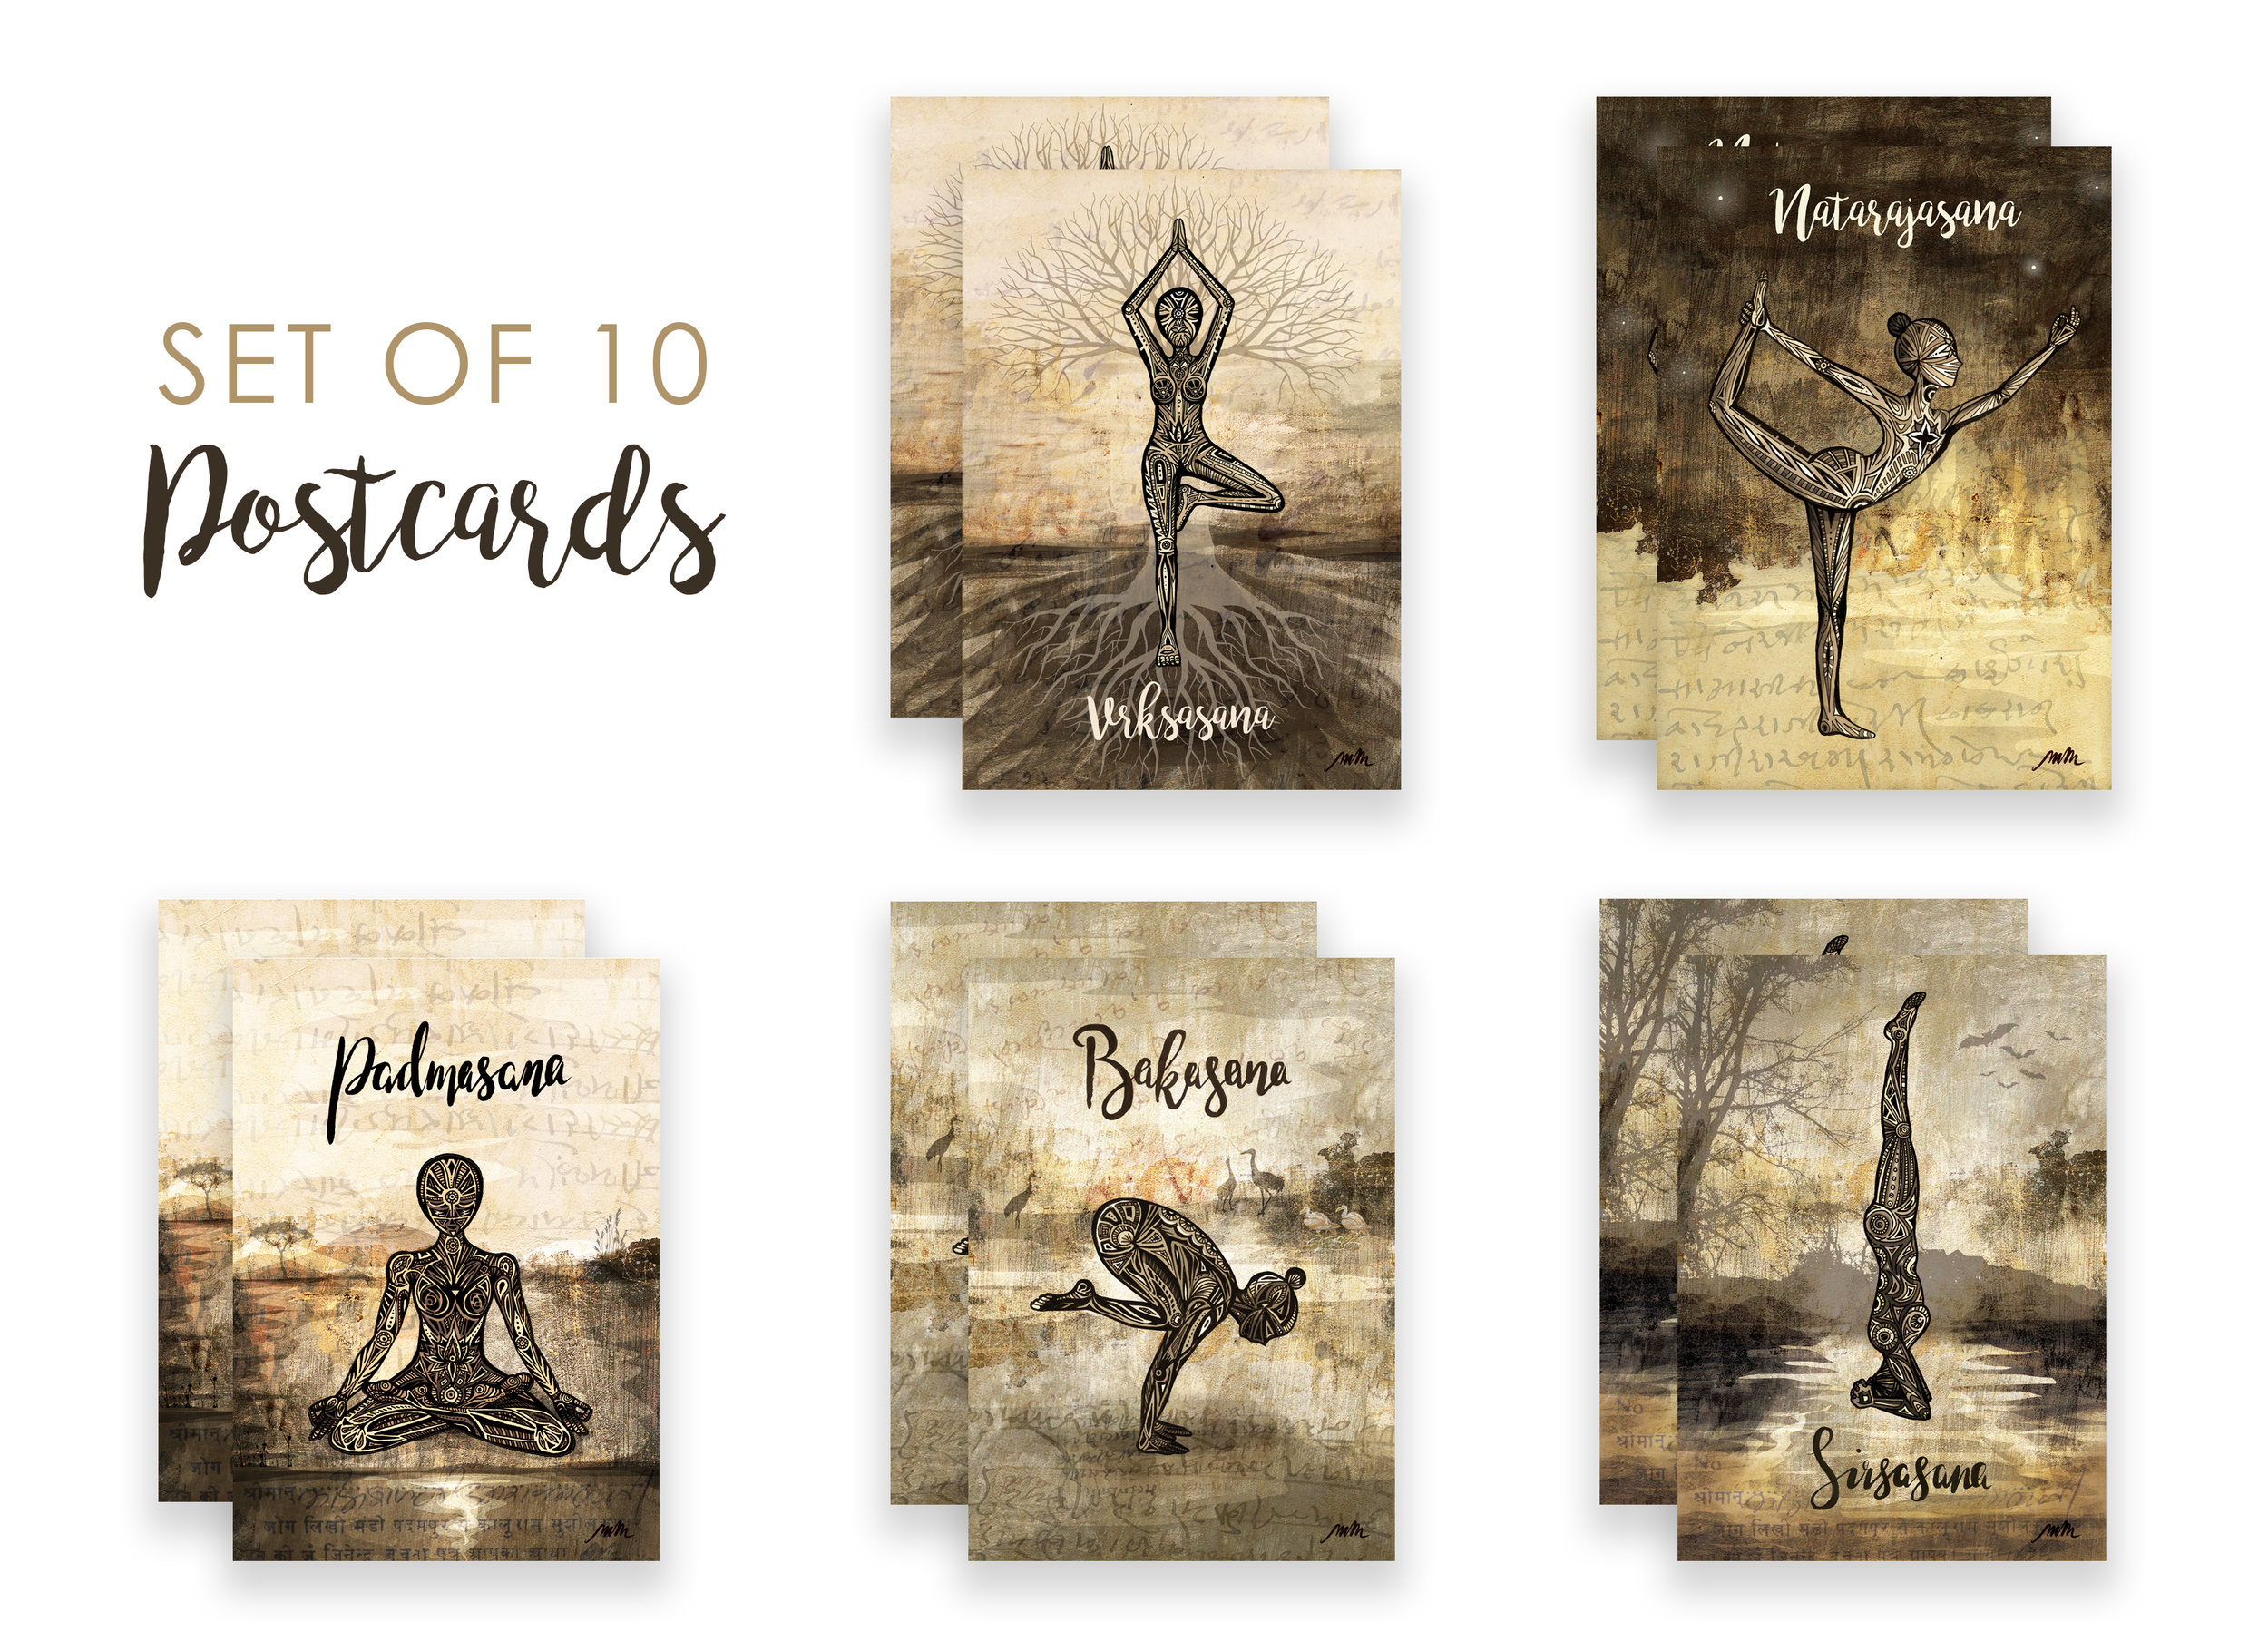 Set of 10 Yoga Postcards - A6 size, blank on reverse. Perfect for sending thoughtful messages / £12